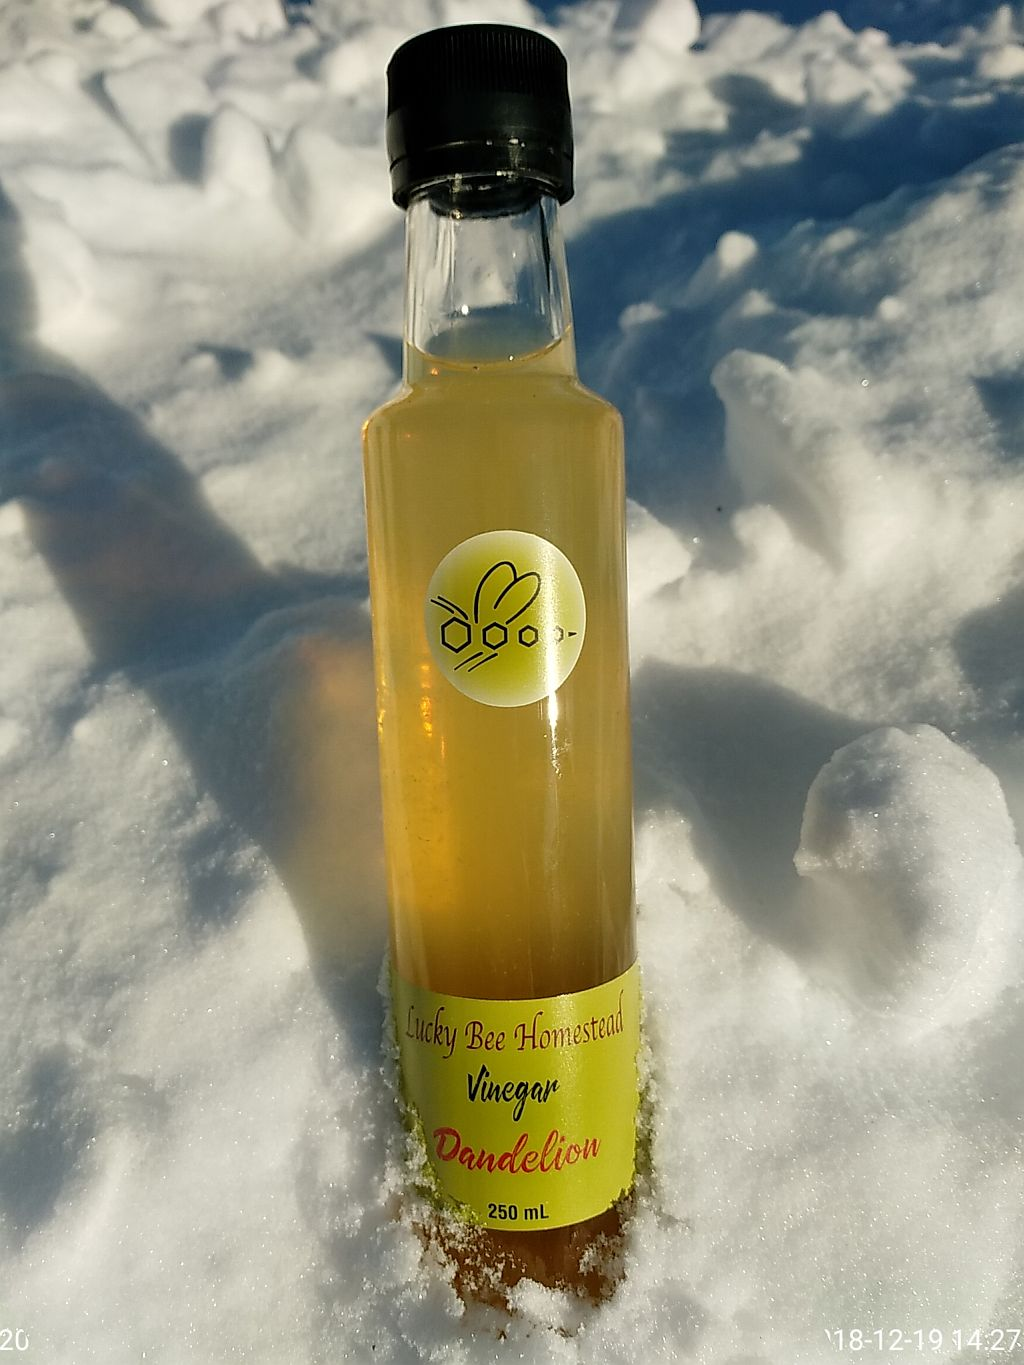 A bottle of Dandelion vinegar in a snow bank